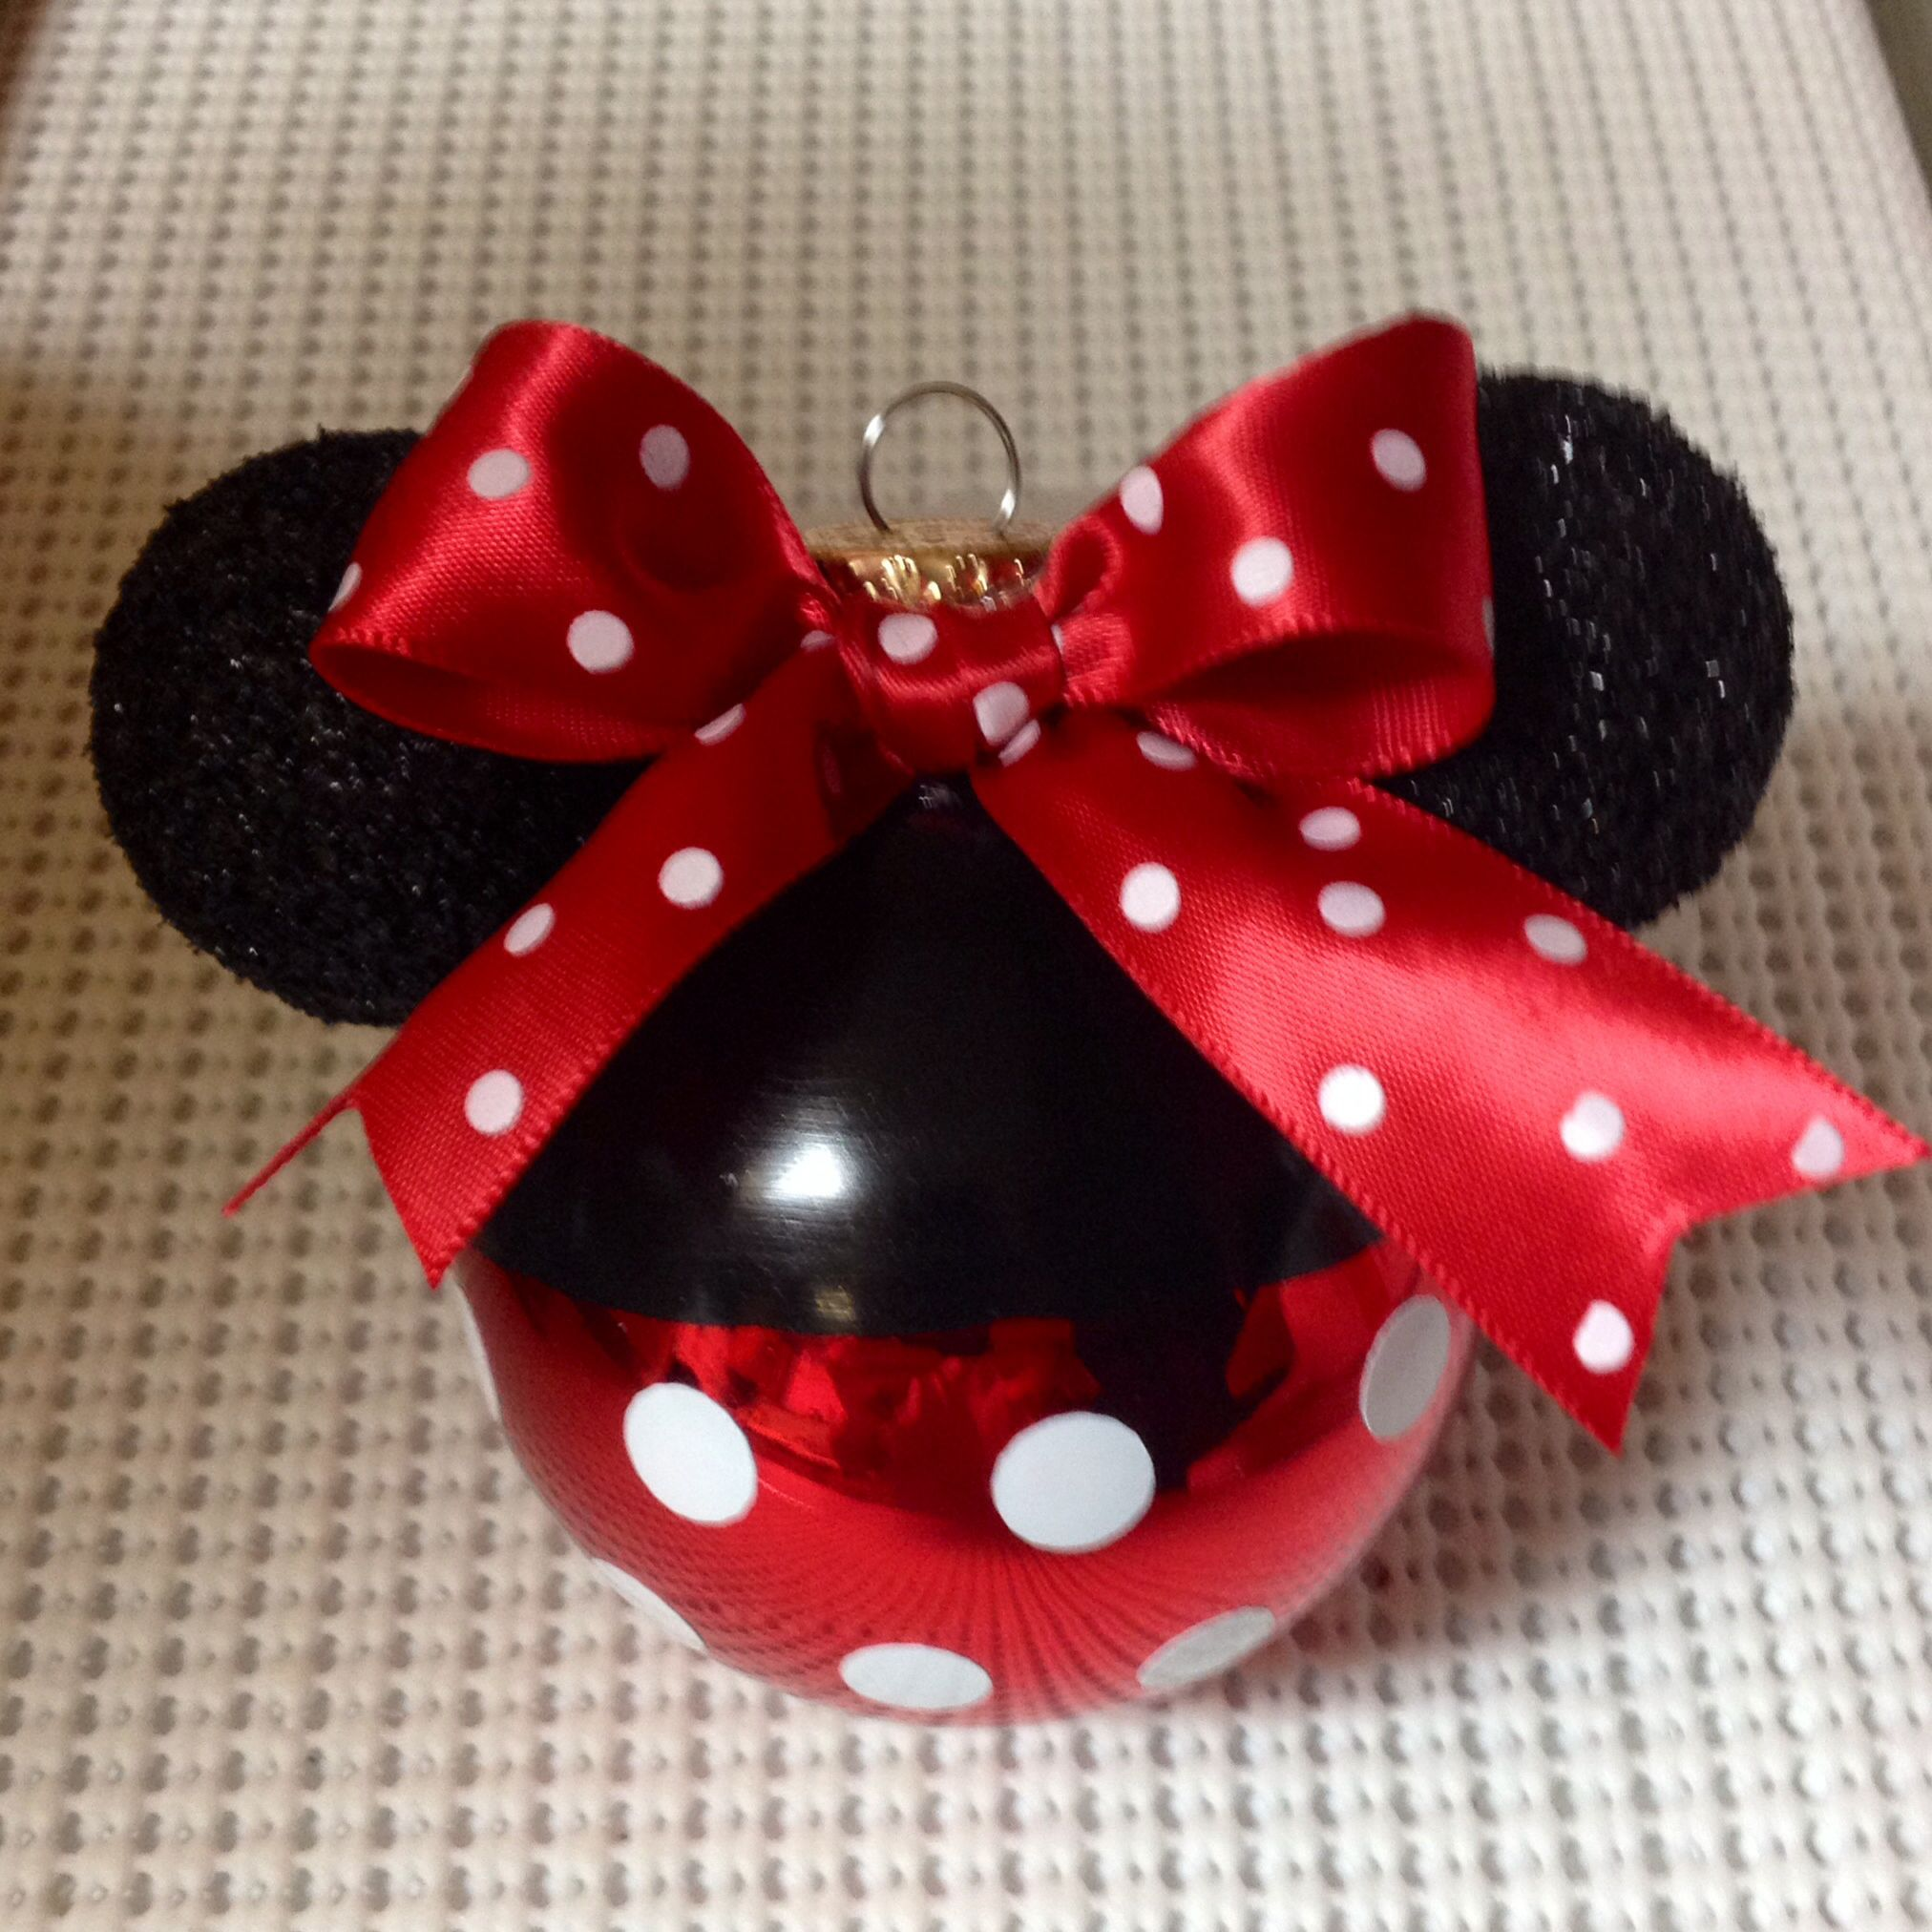 My 1st Minnie Mouse ornament I made for my Disney Tree   LOOK